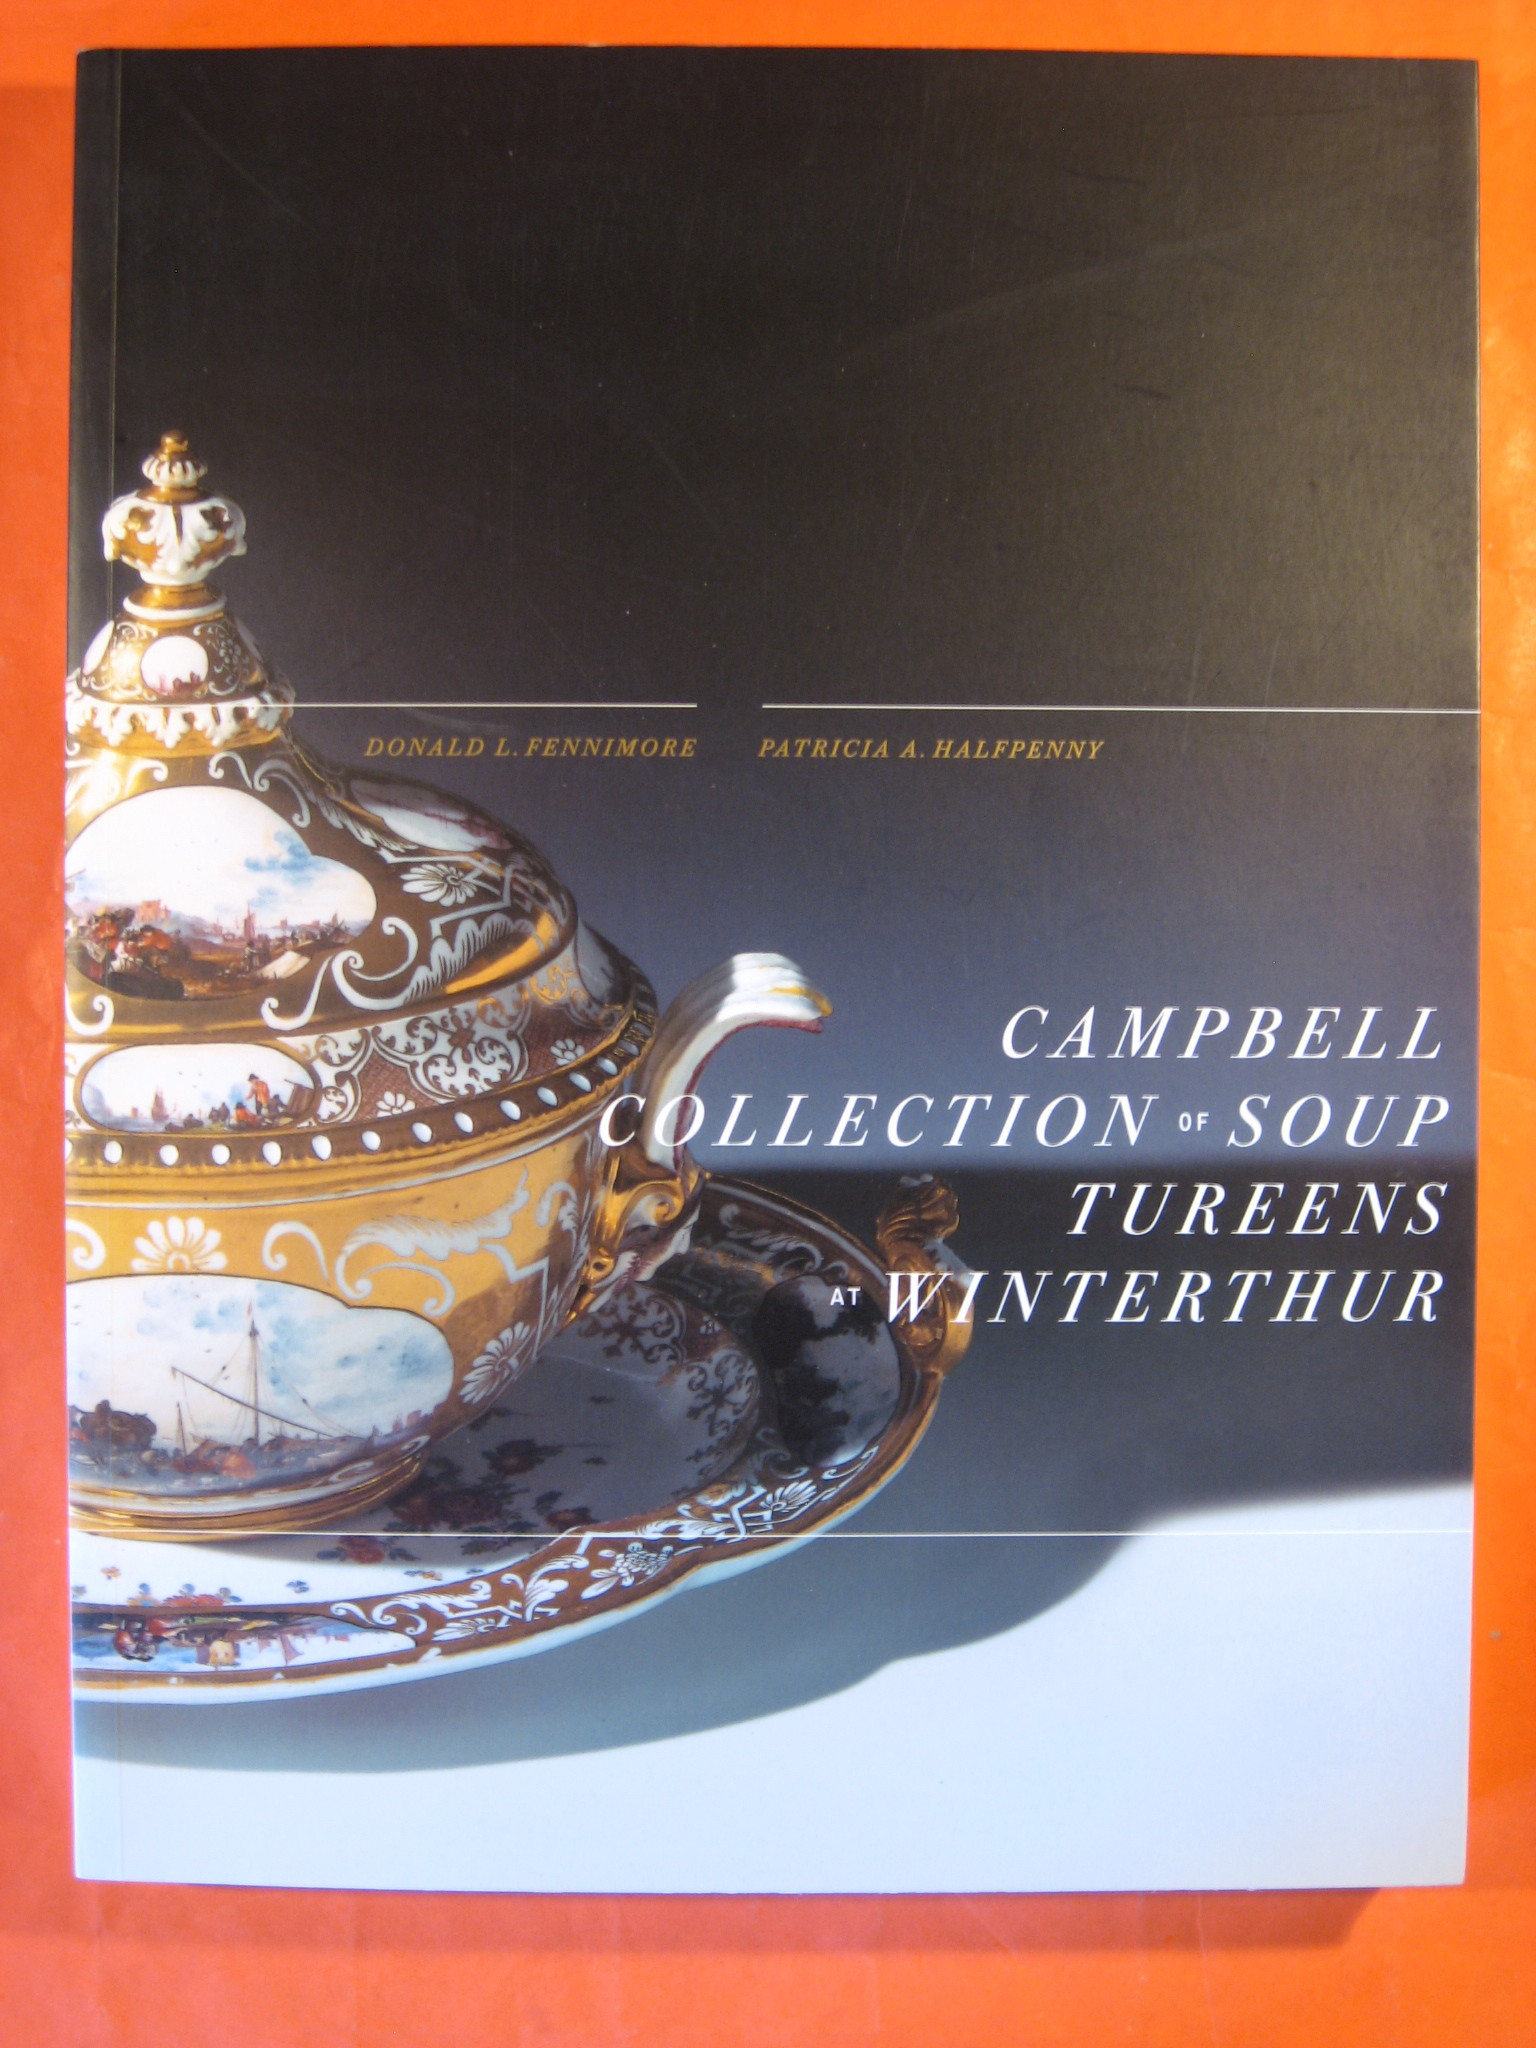 Campbell Collection of Soup Tureens at Winterthur (Winterthur Book), Fennimore, Donald L.; Halfpenny, Patricia A.